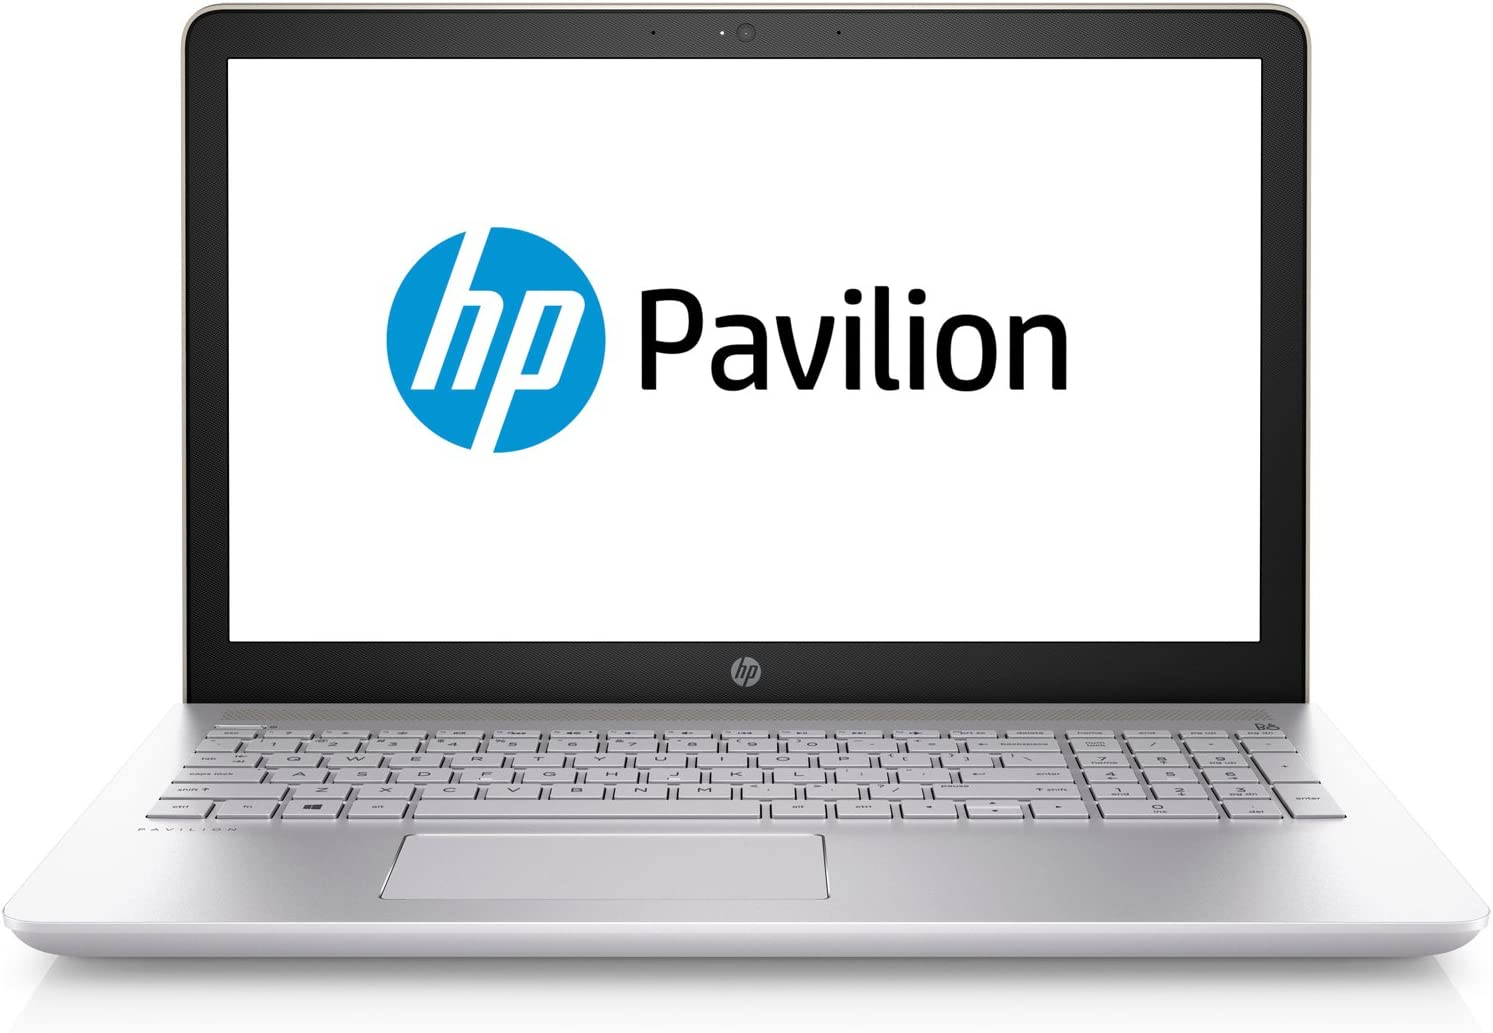 HP 1KU09UAR#ABA Pavilion - 15-cc067cl Laptop, Windows 10 Home, Intel Core i7 7500U, 2.7 GHz, 8 GB RAM